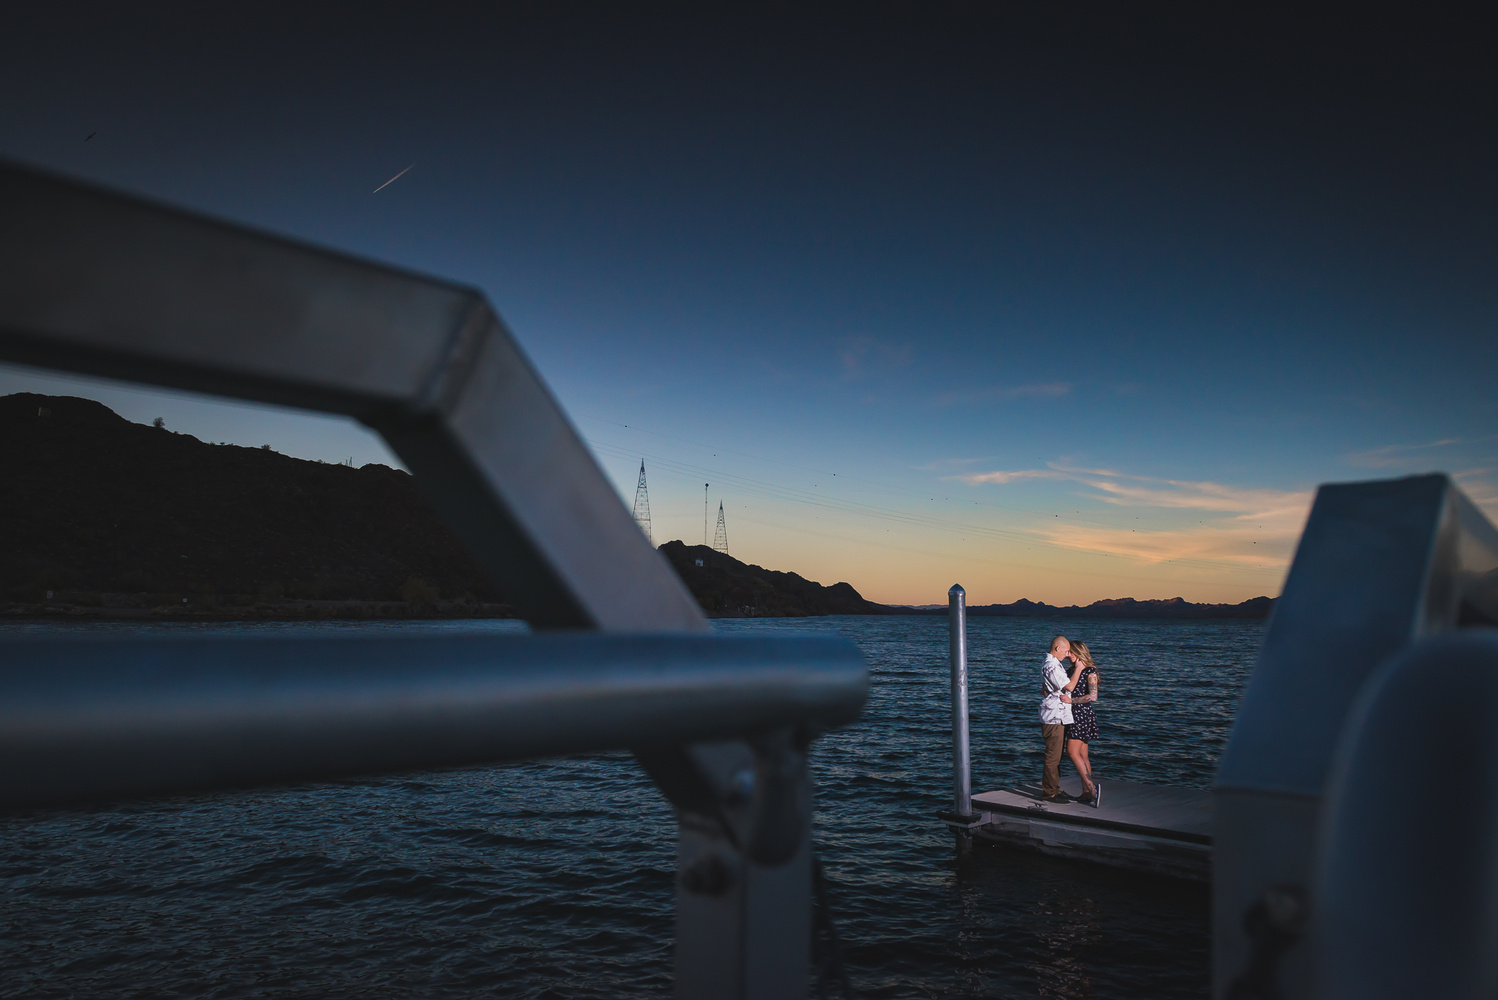 Alone but together on Lake Havasu by Dusty Wooddell